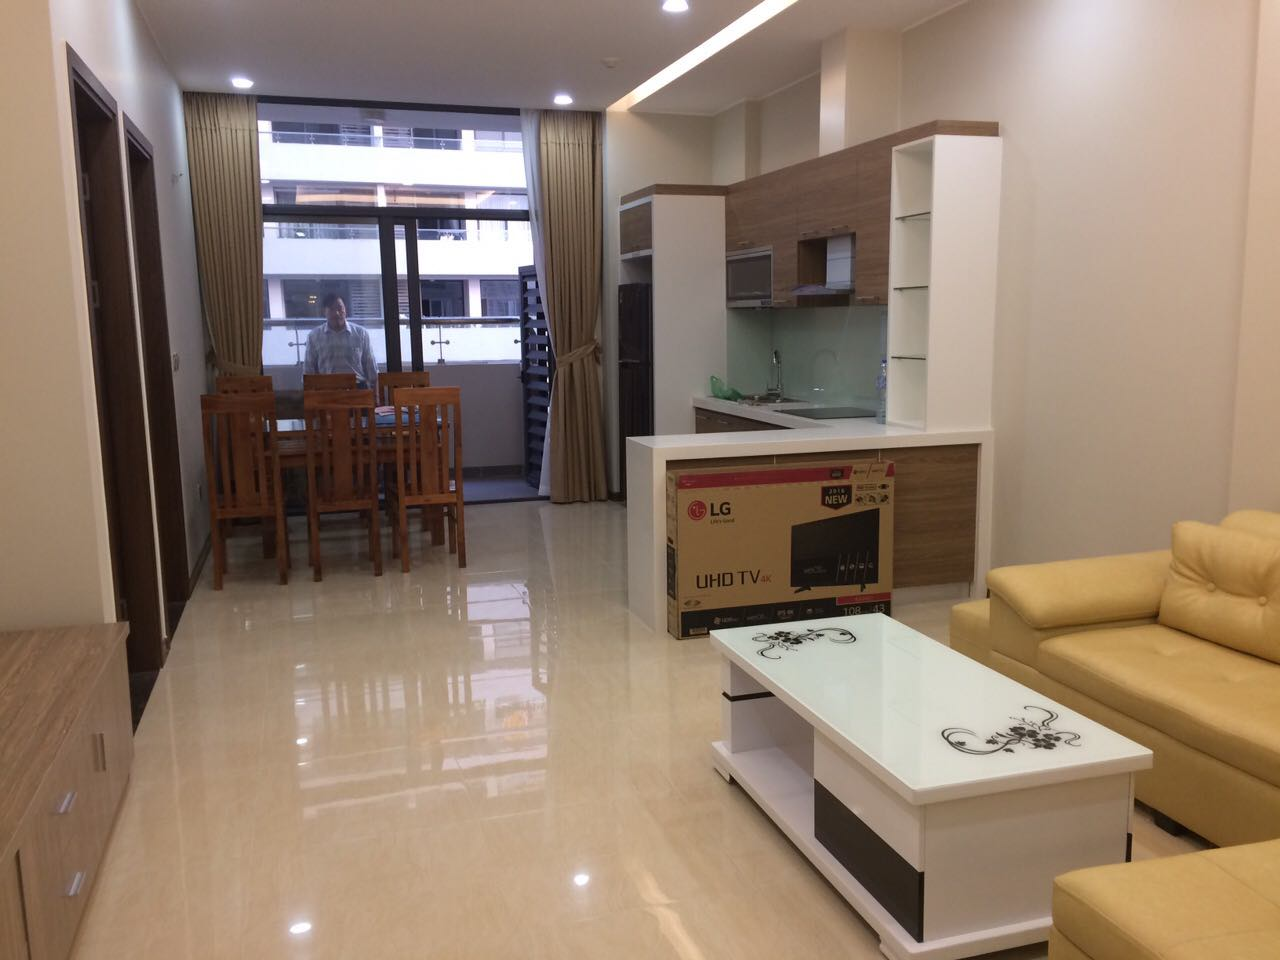 Apartments for rent in Trang An Complex, Nghia Do Ward, Cau Giay District, Hanoi.